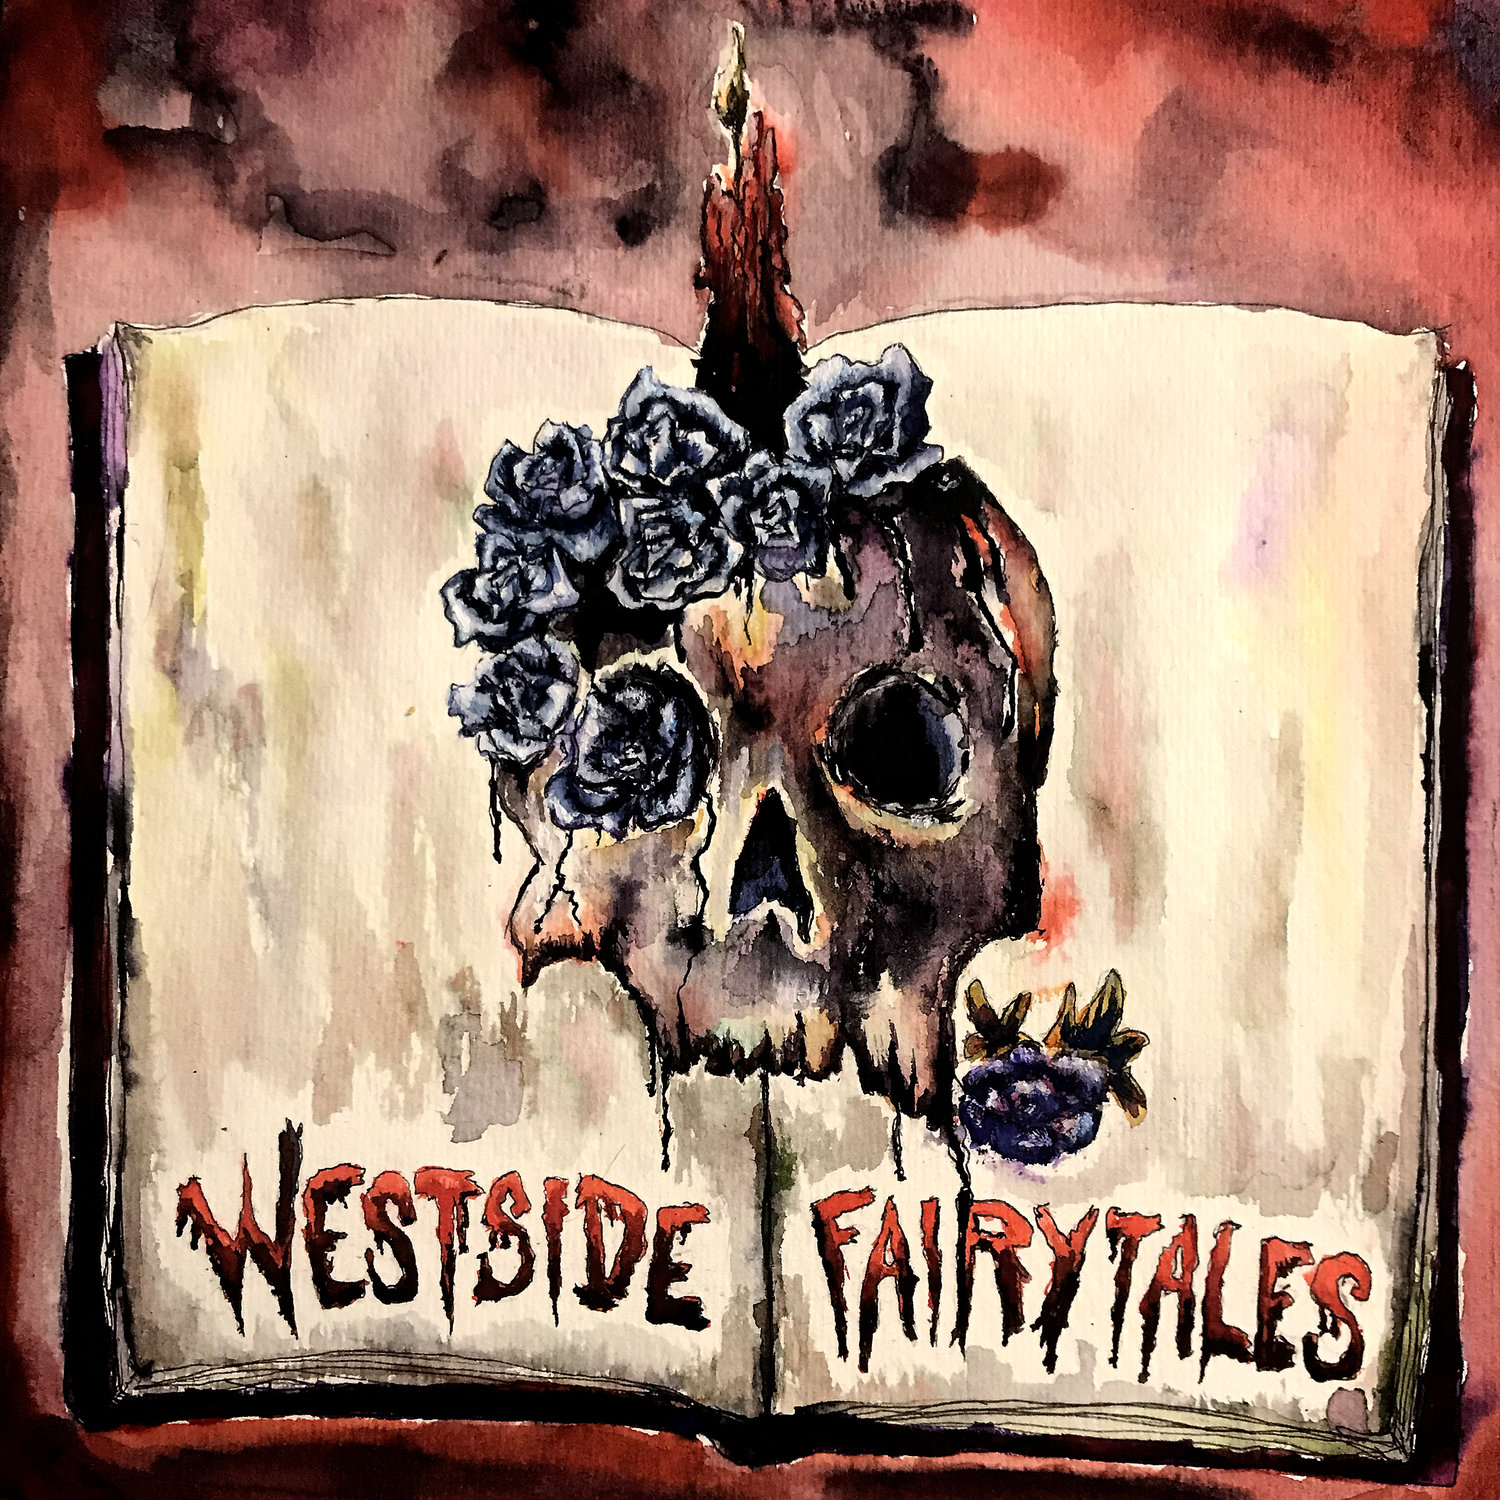 The Westside Fairytales